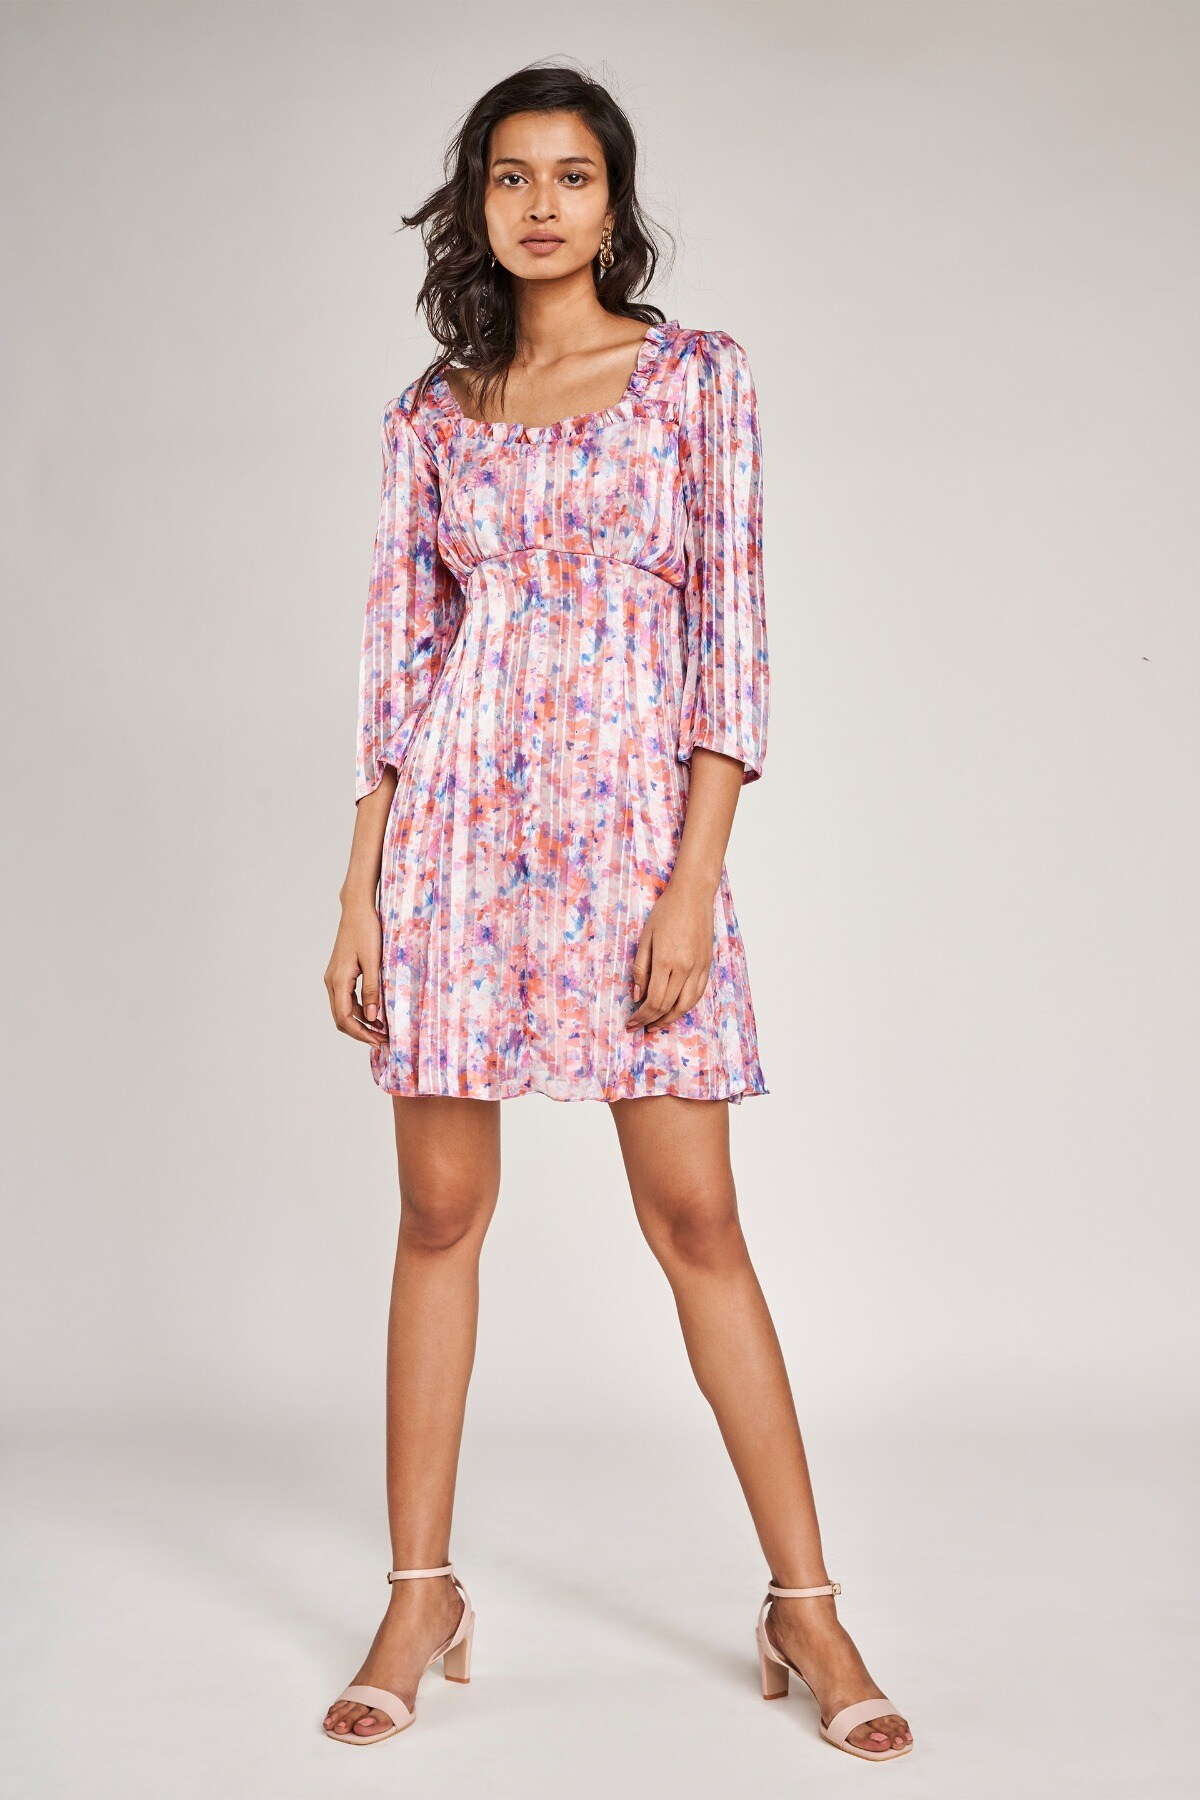 AND | Multi Color Floral Printed A-Line Dress